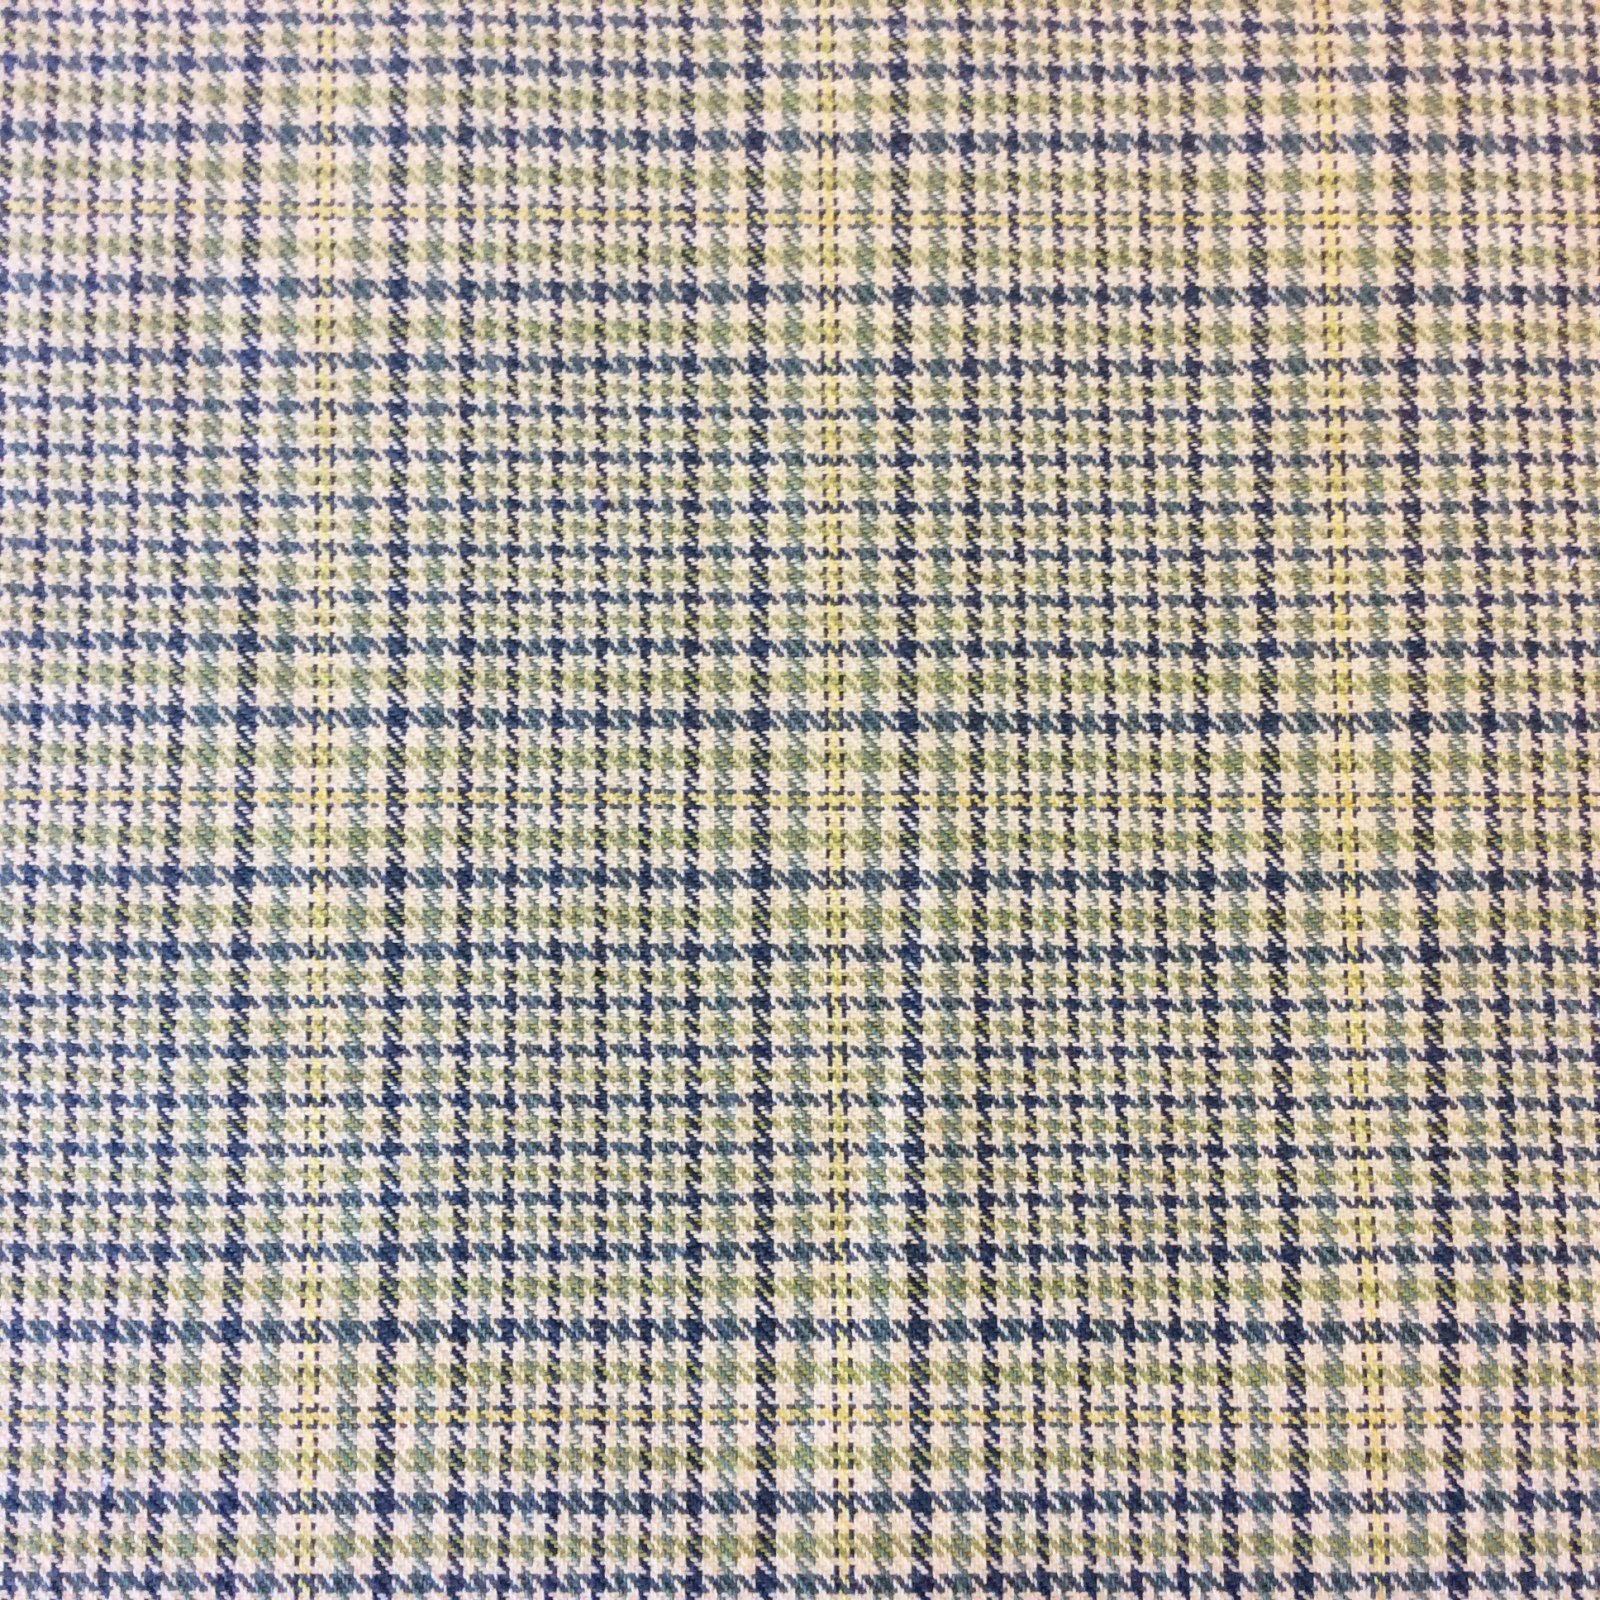 Plaid Clic Lagoon Houndstooth Geo Grid Upholstery Home Decor Fabric Lhd210